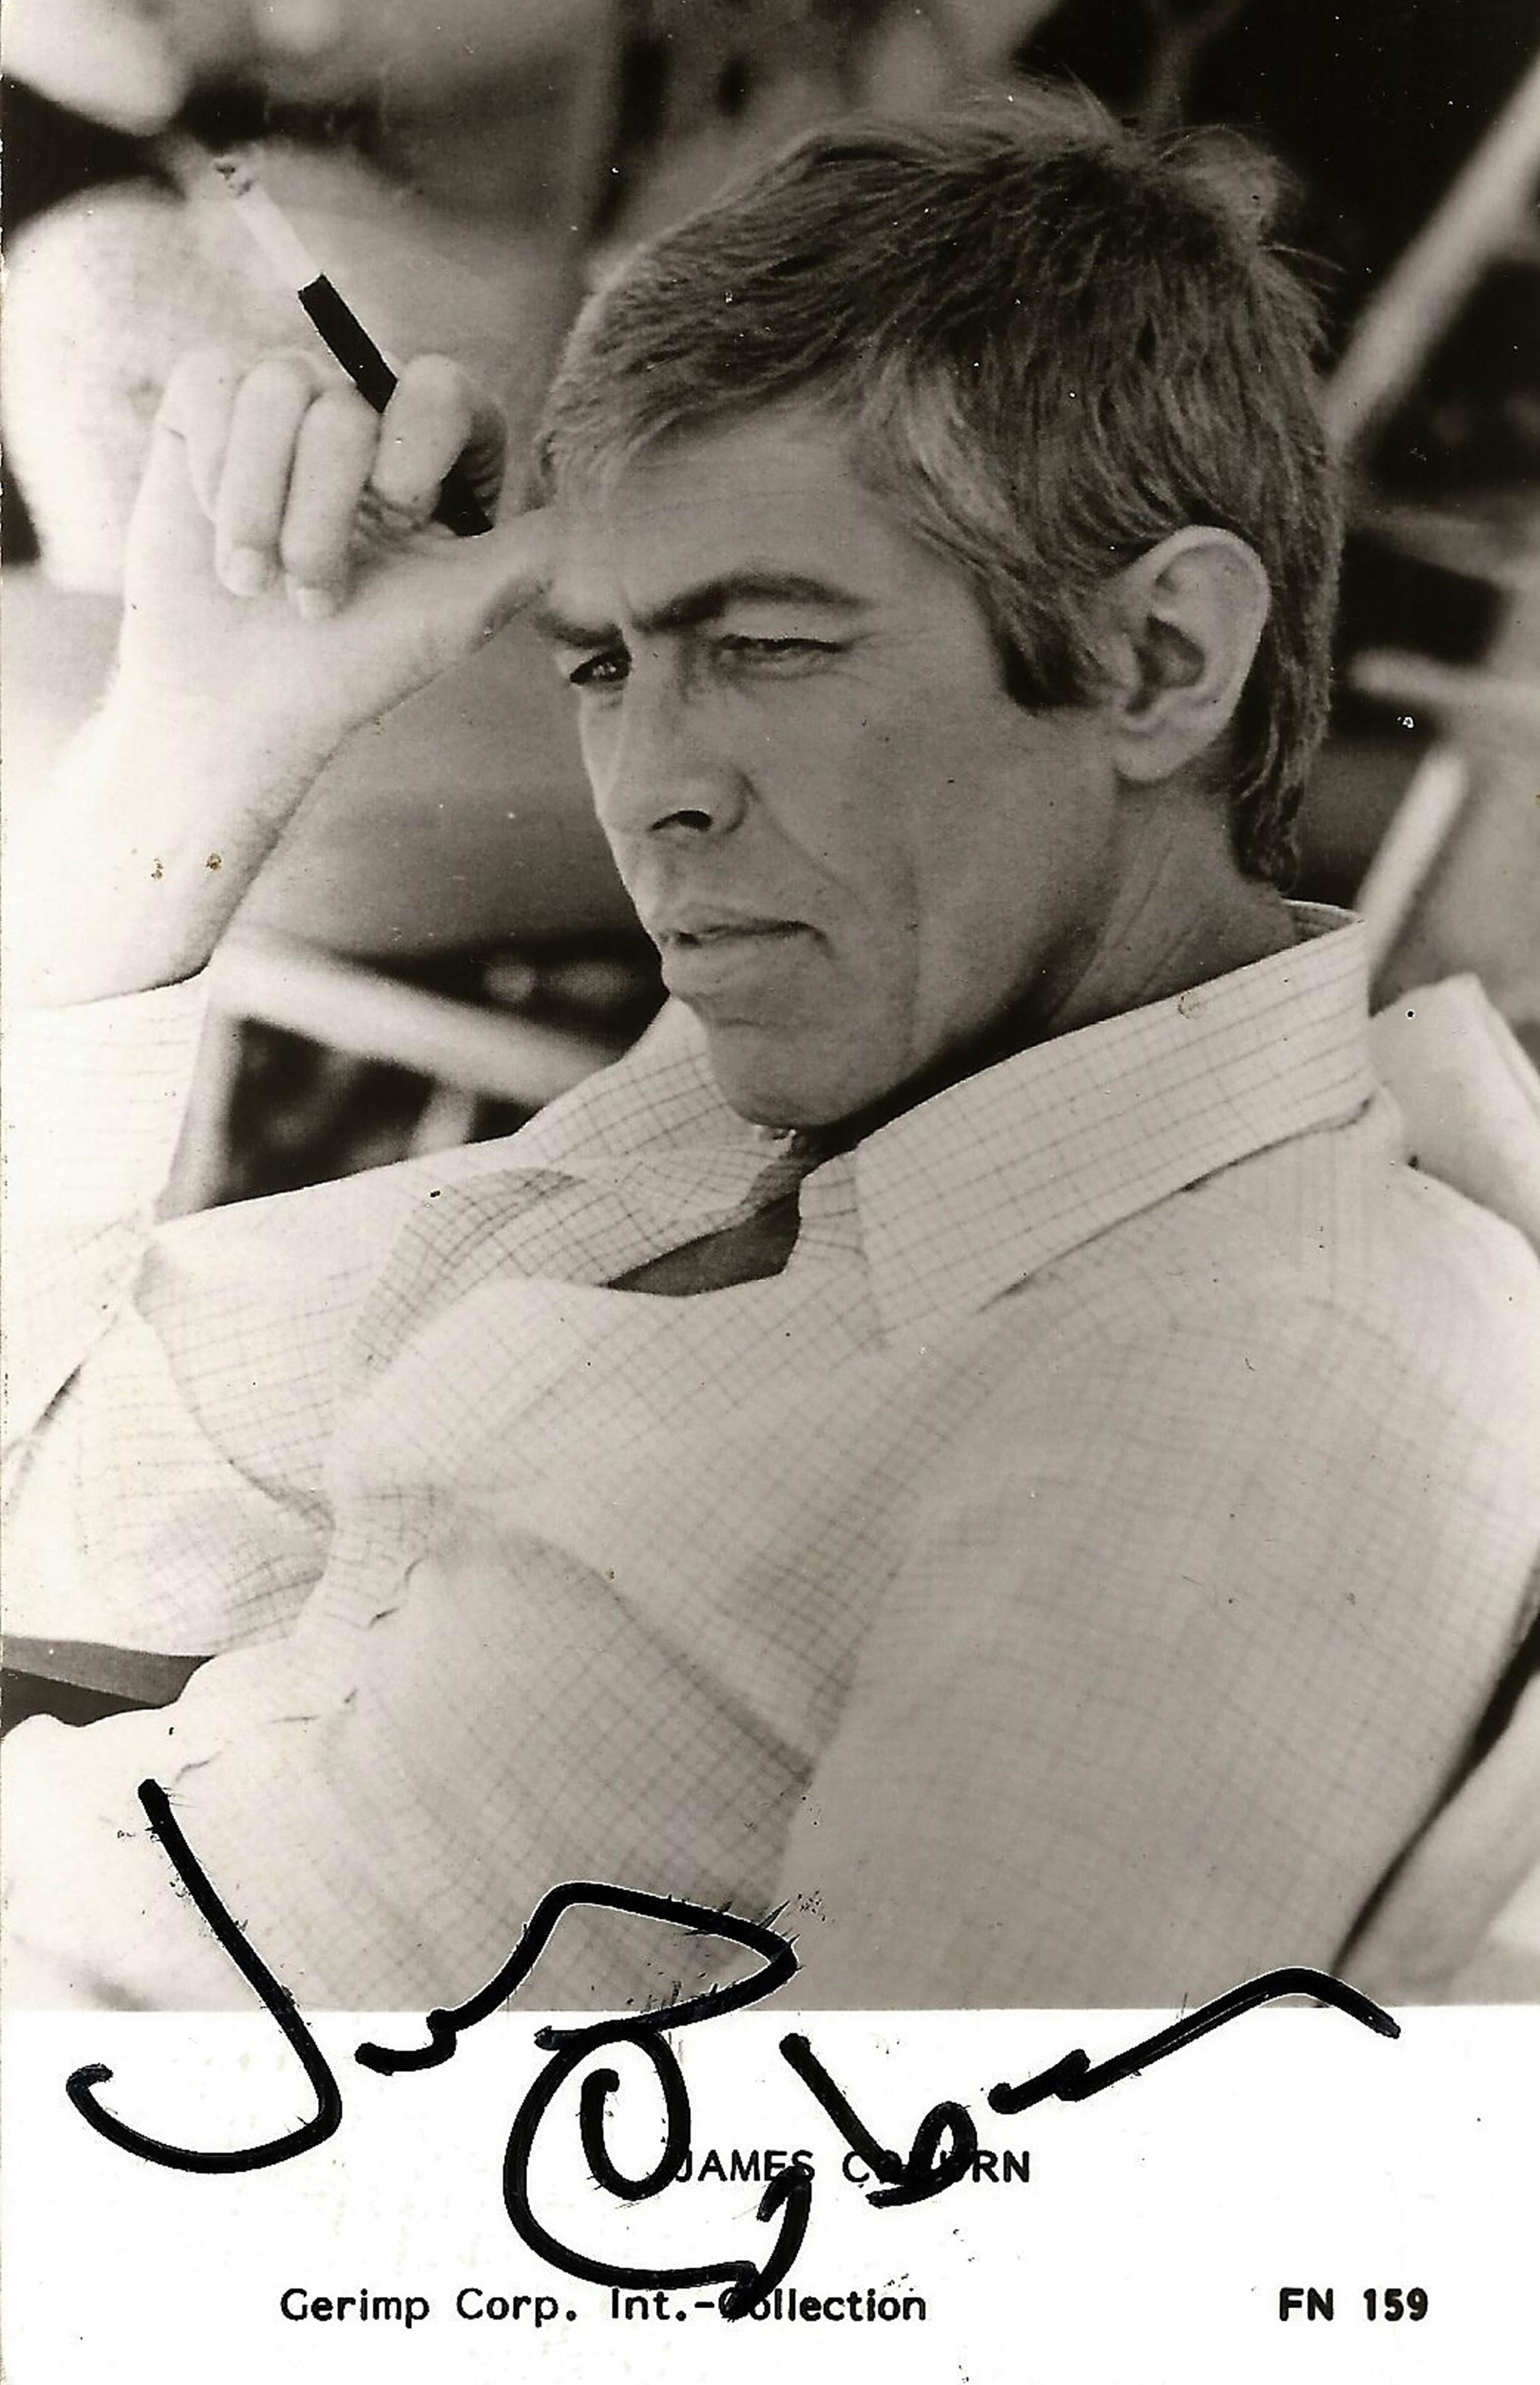 James Coburn signed 6x4 black and white photo. August 31, 1928 - November 18, 2002, was an